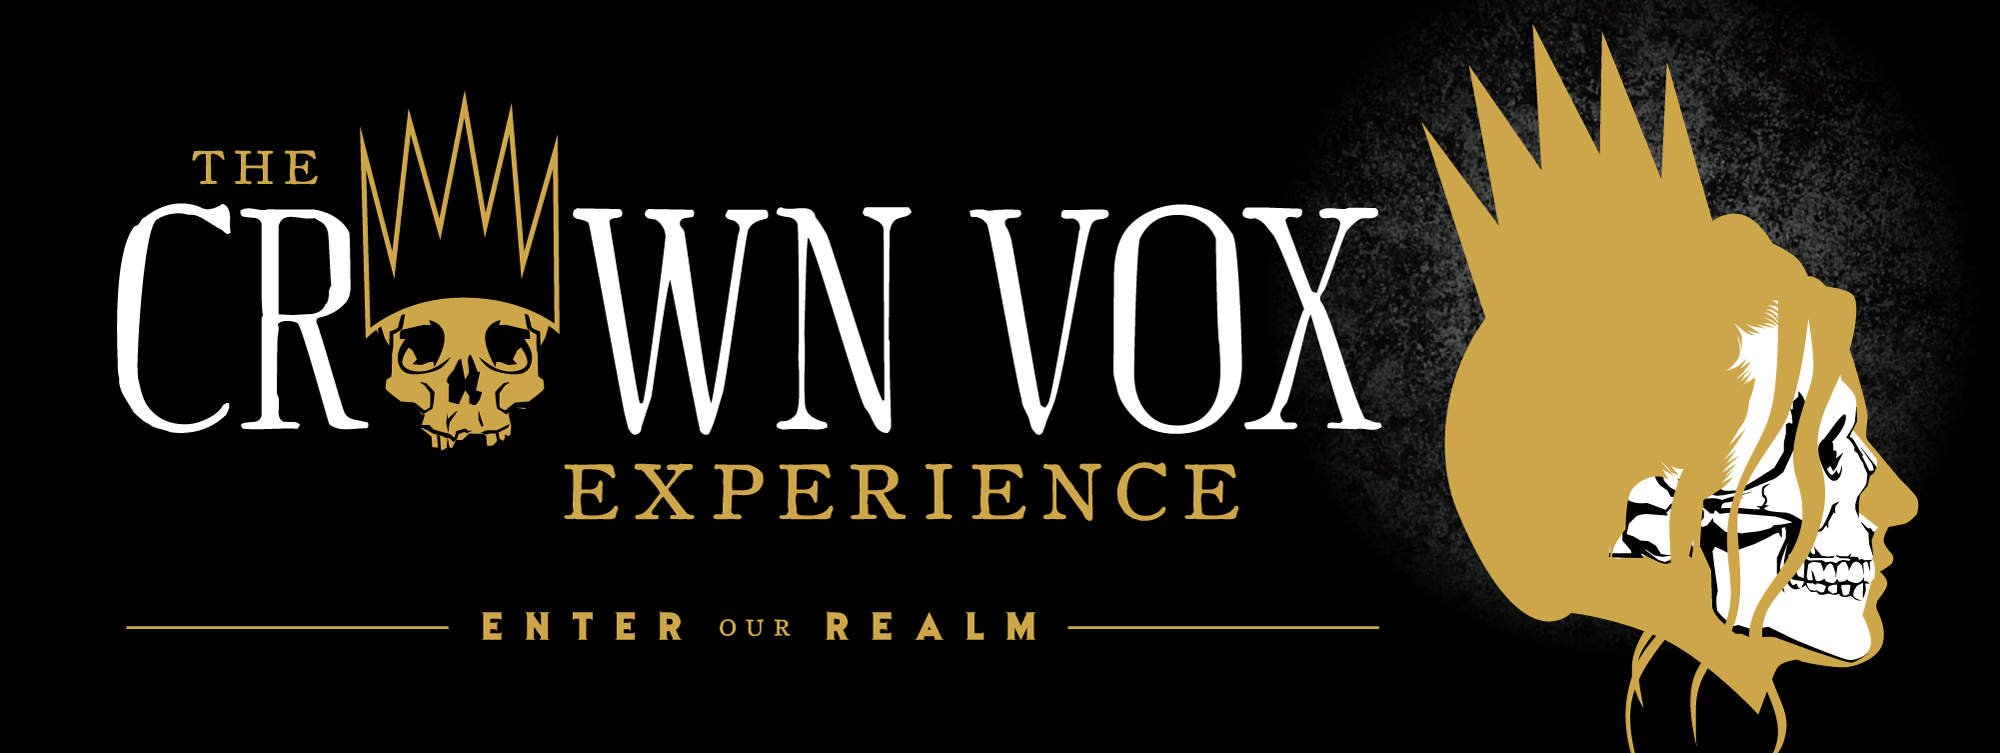 crown_vox_launch-event-banner.png